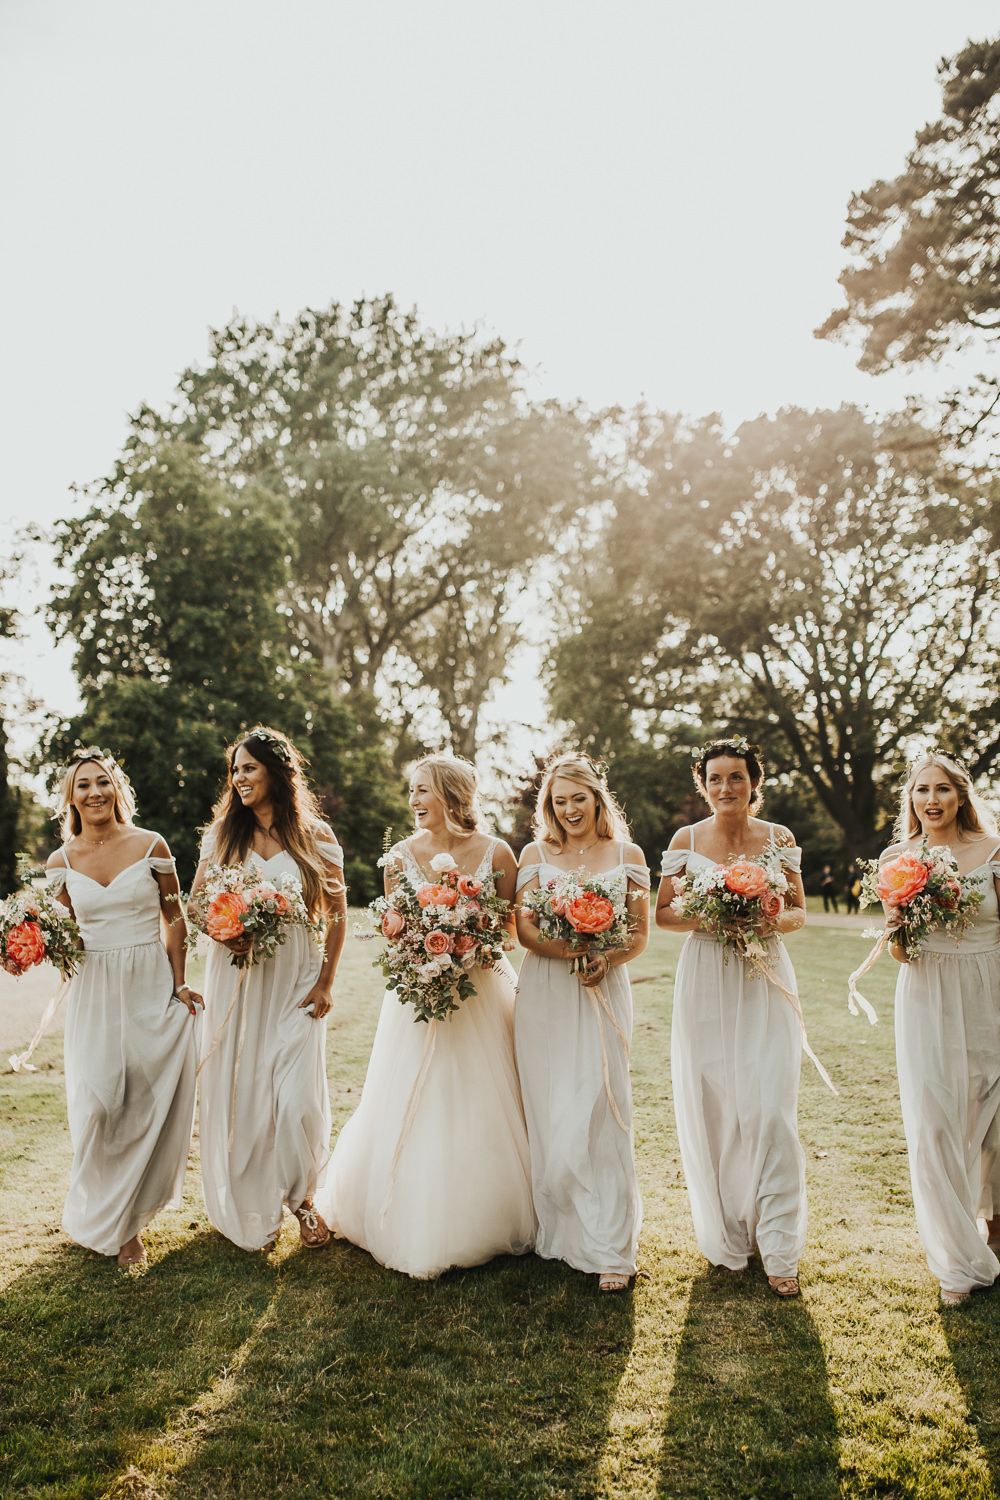 Bridesmaid Bridesmaids Dress Dresses Long Maxi Grey Stubton Hall Wedding Darina Stoda Photography